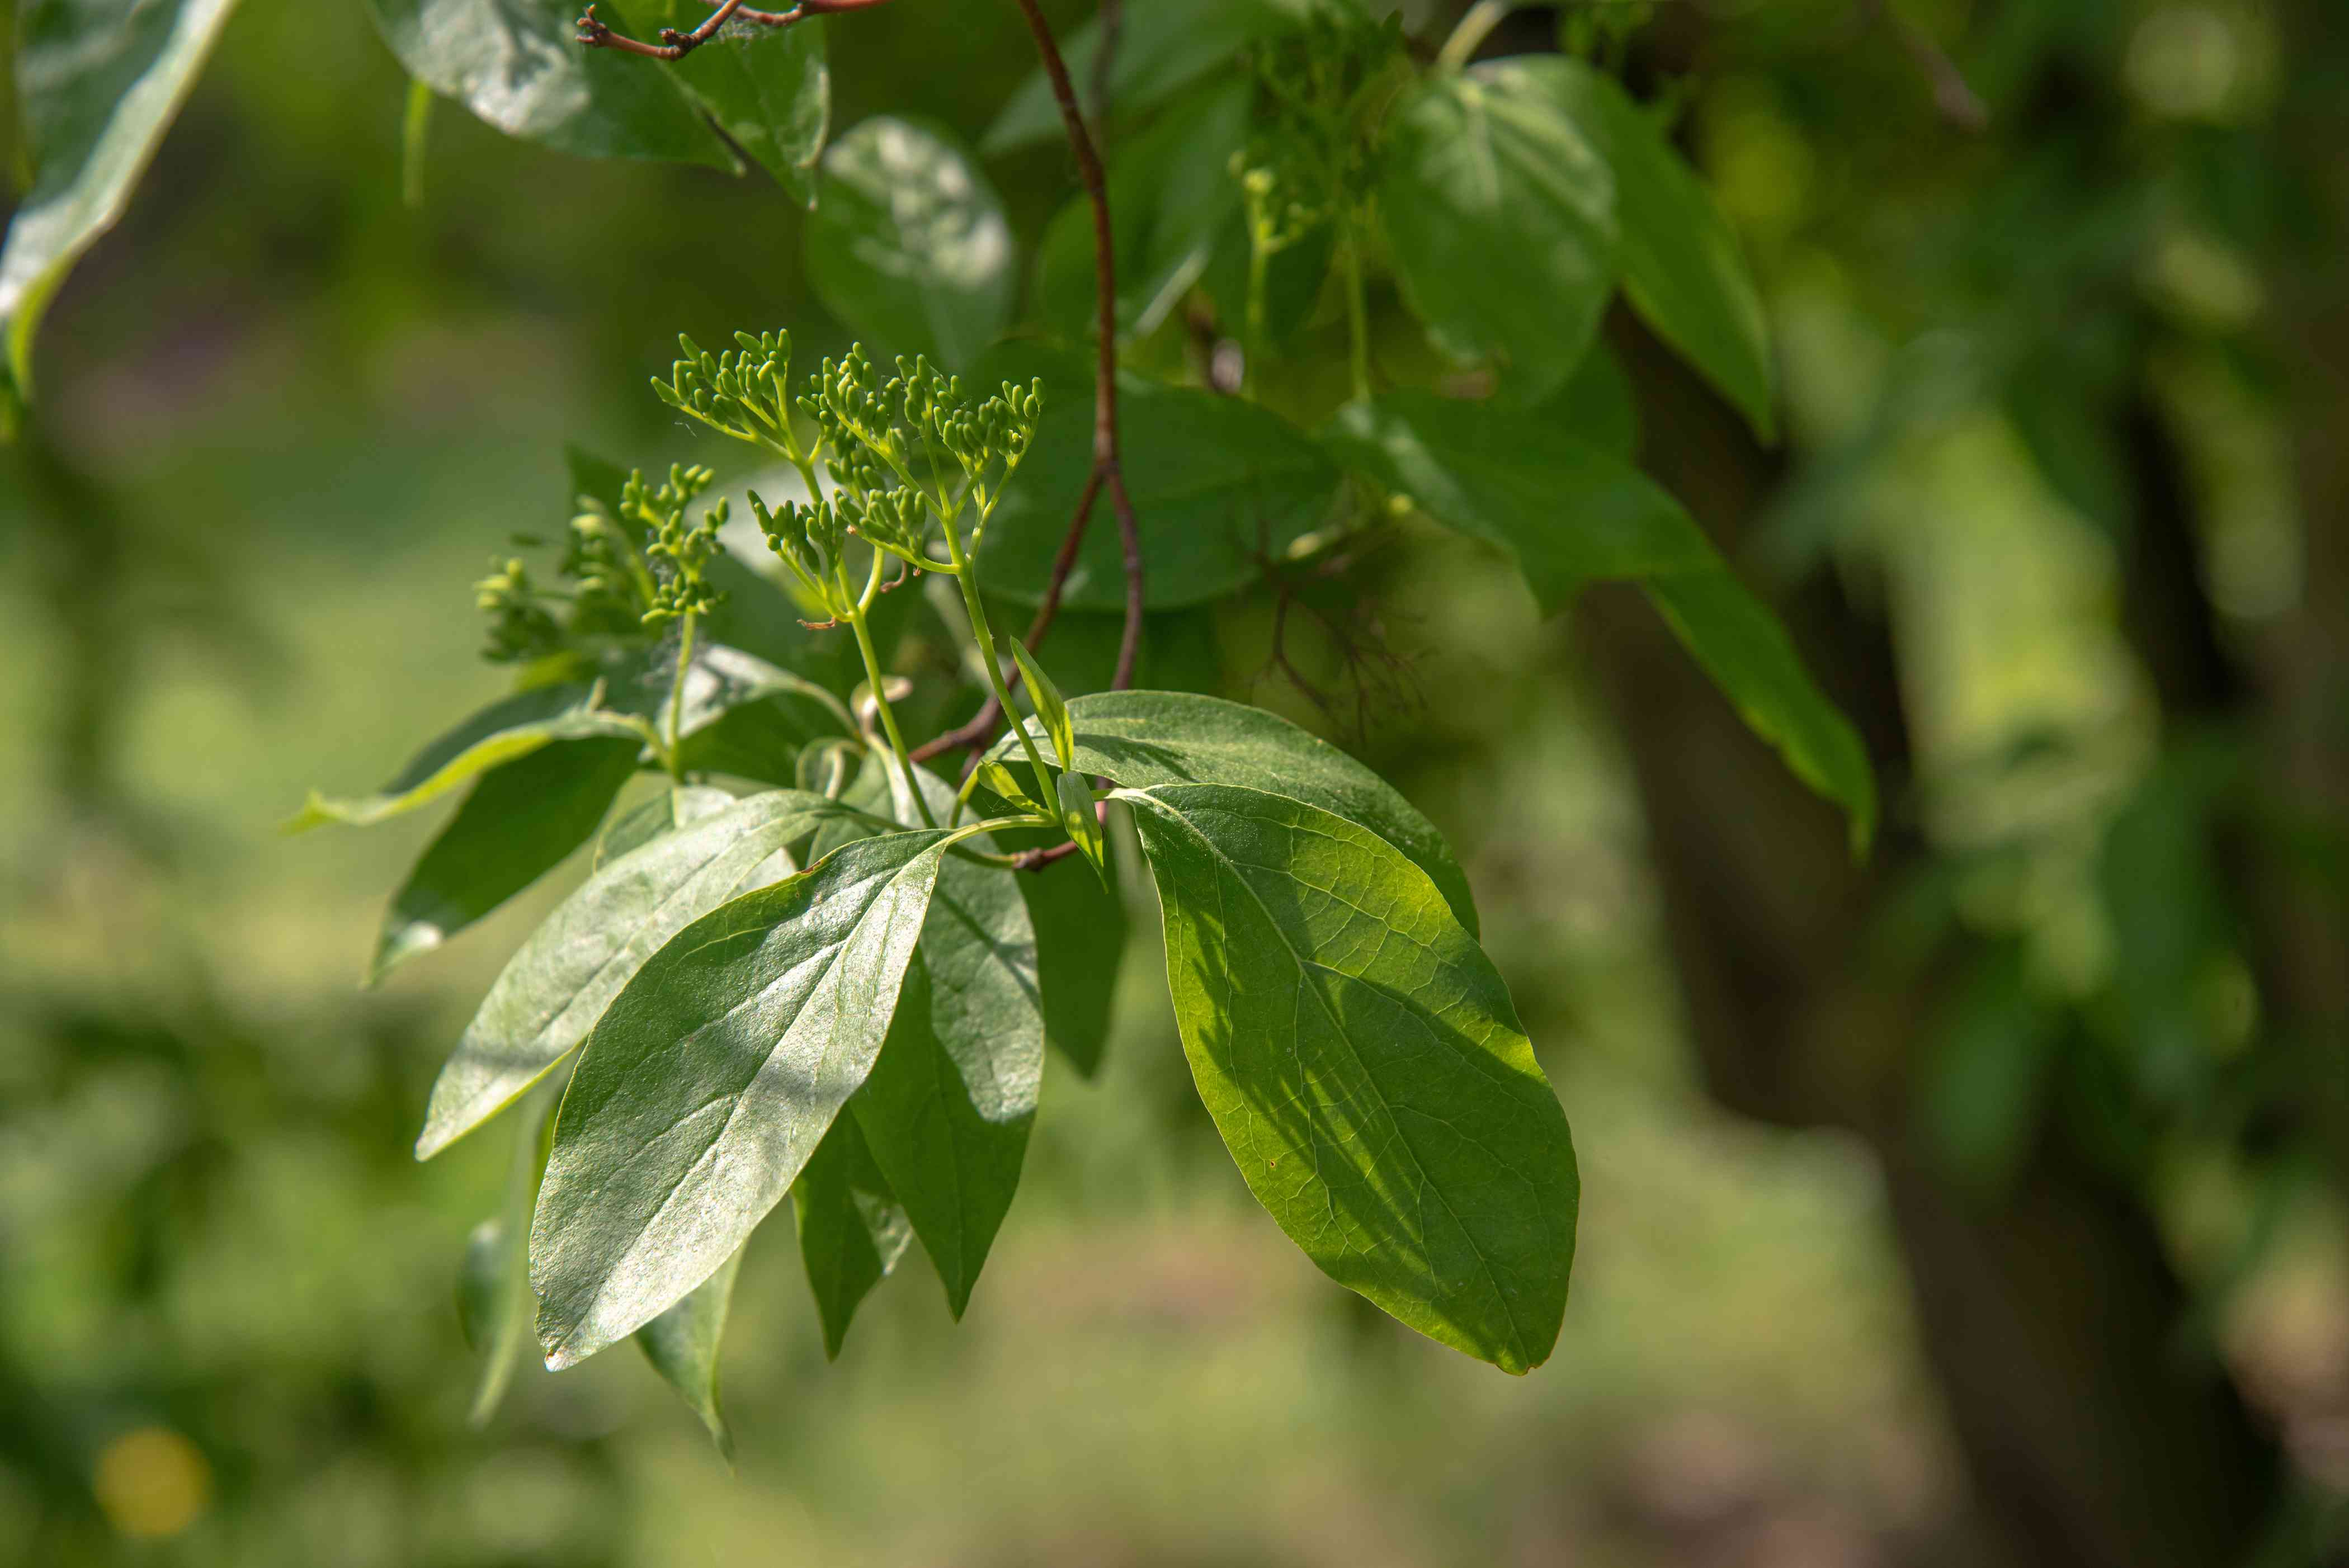 Gray dogwood branch with bright green leaves and buds closeup